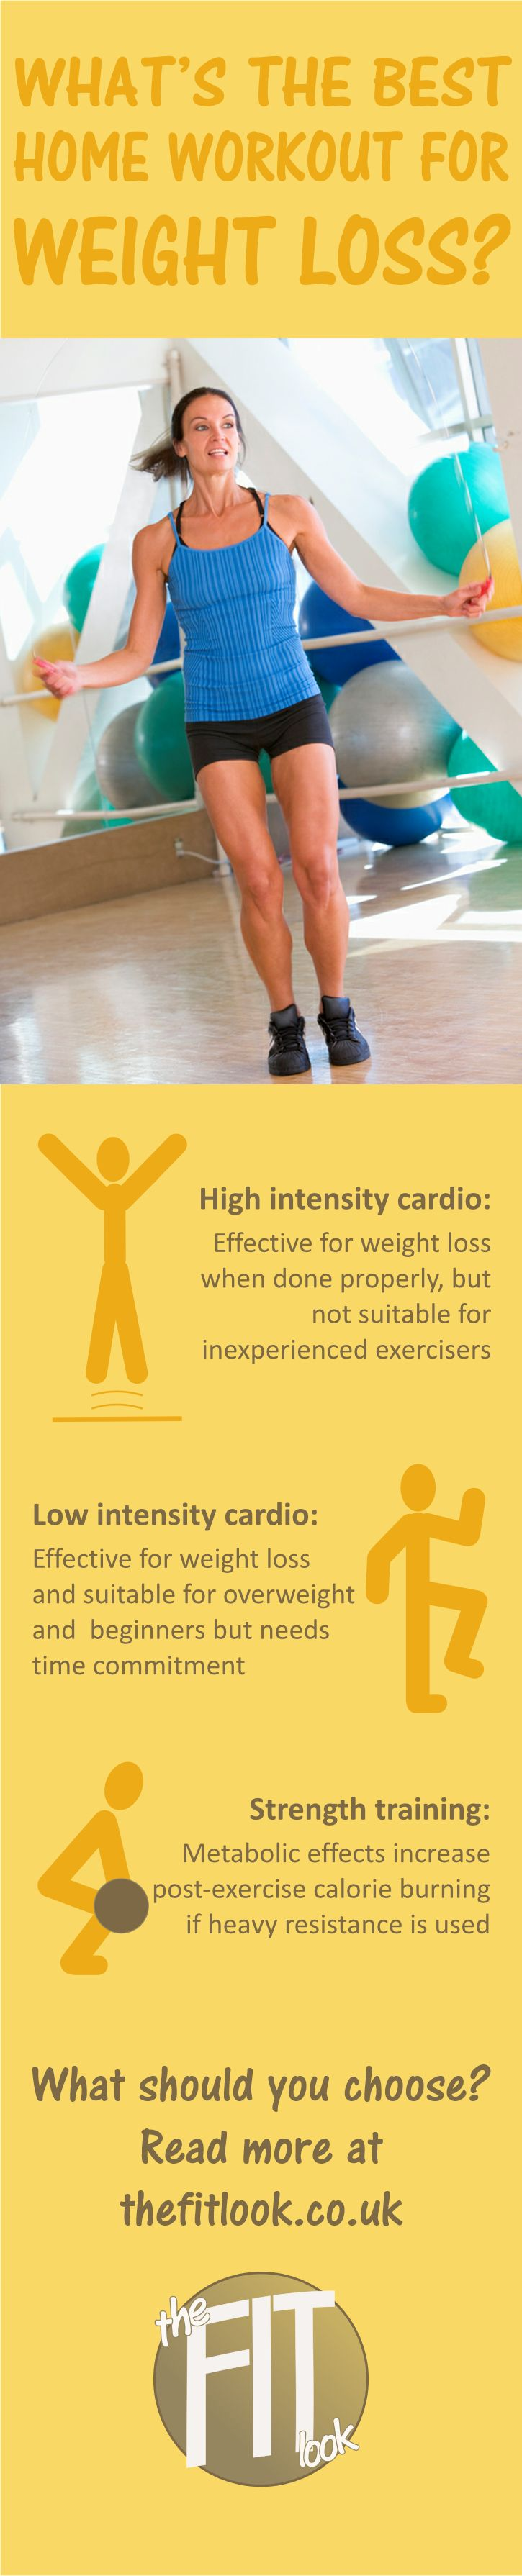 What's the best home workout for weight loss?  There are arguments for and against high intensity, low intensity and strength.  But maybe the best way is to combine them with moderate intensity intervals and muscular endurance training.